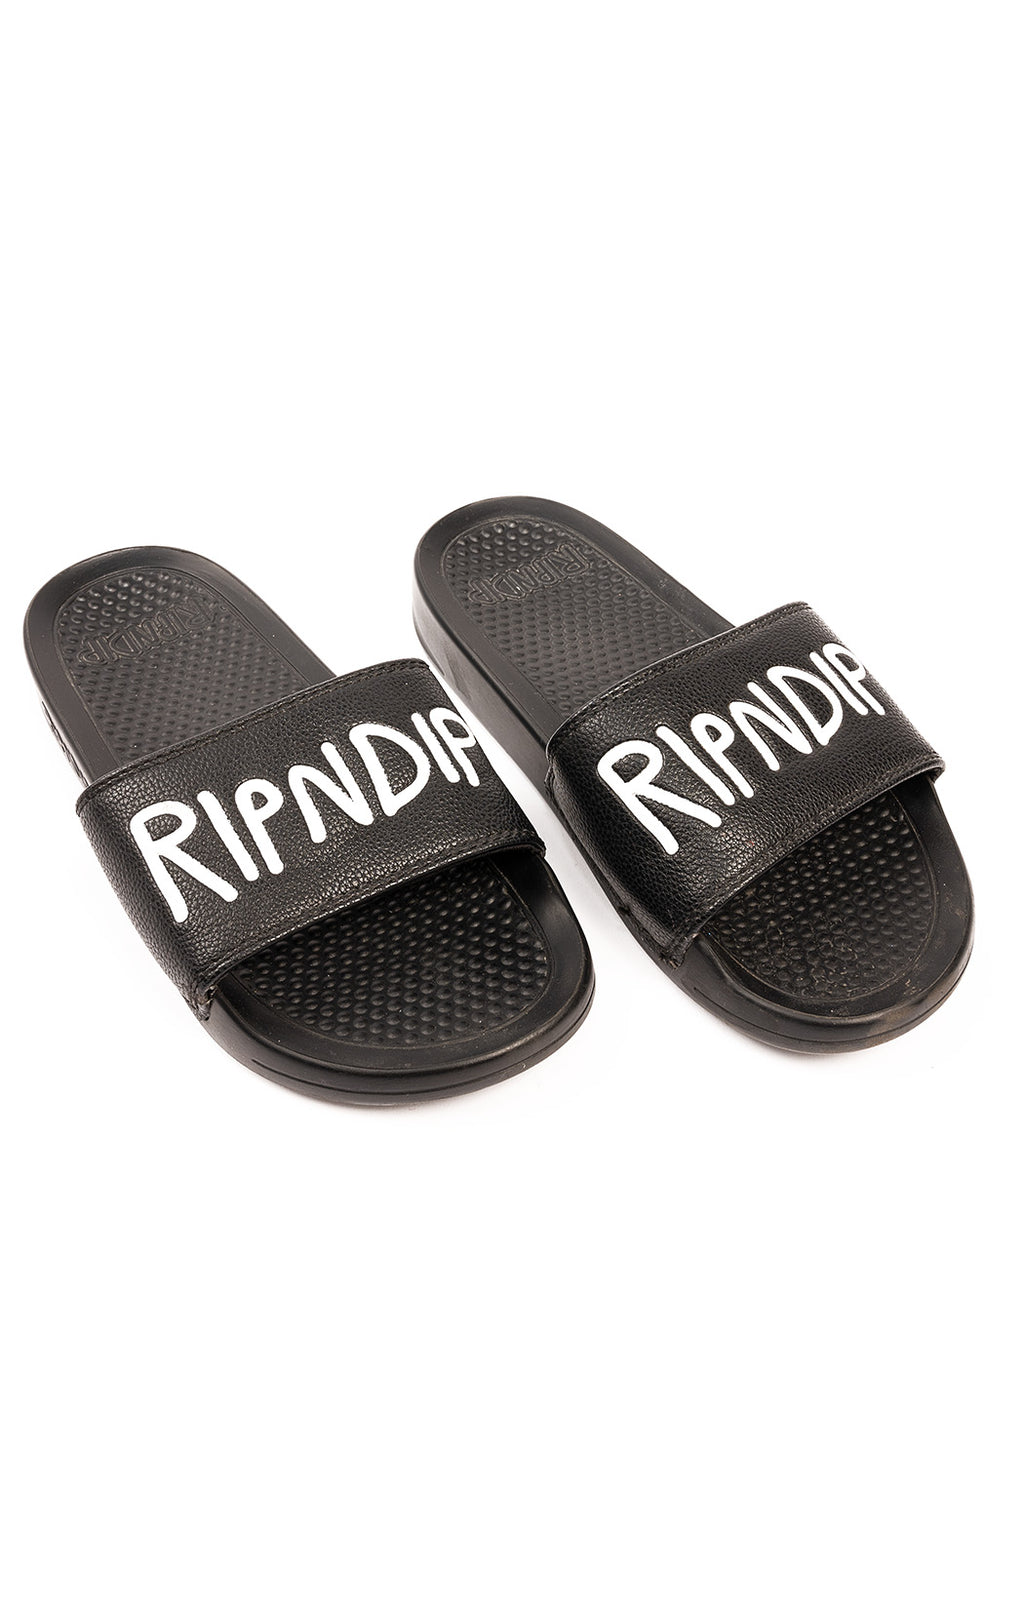 Black rubber slides with white writing